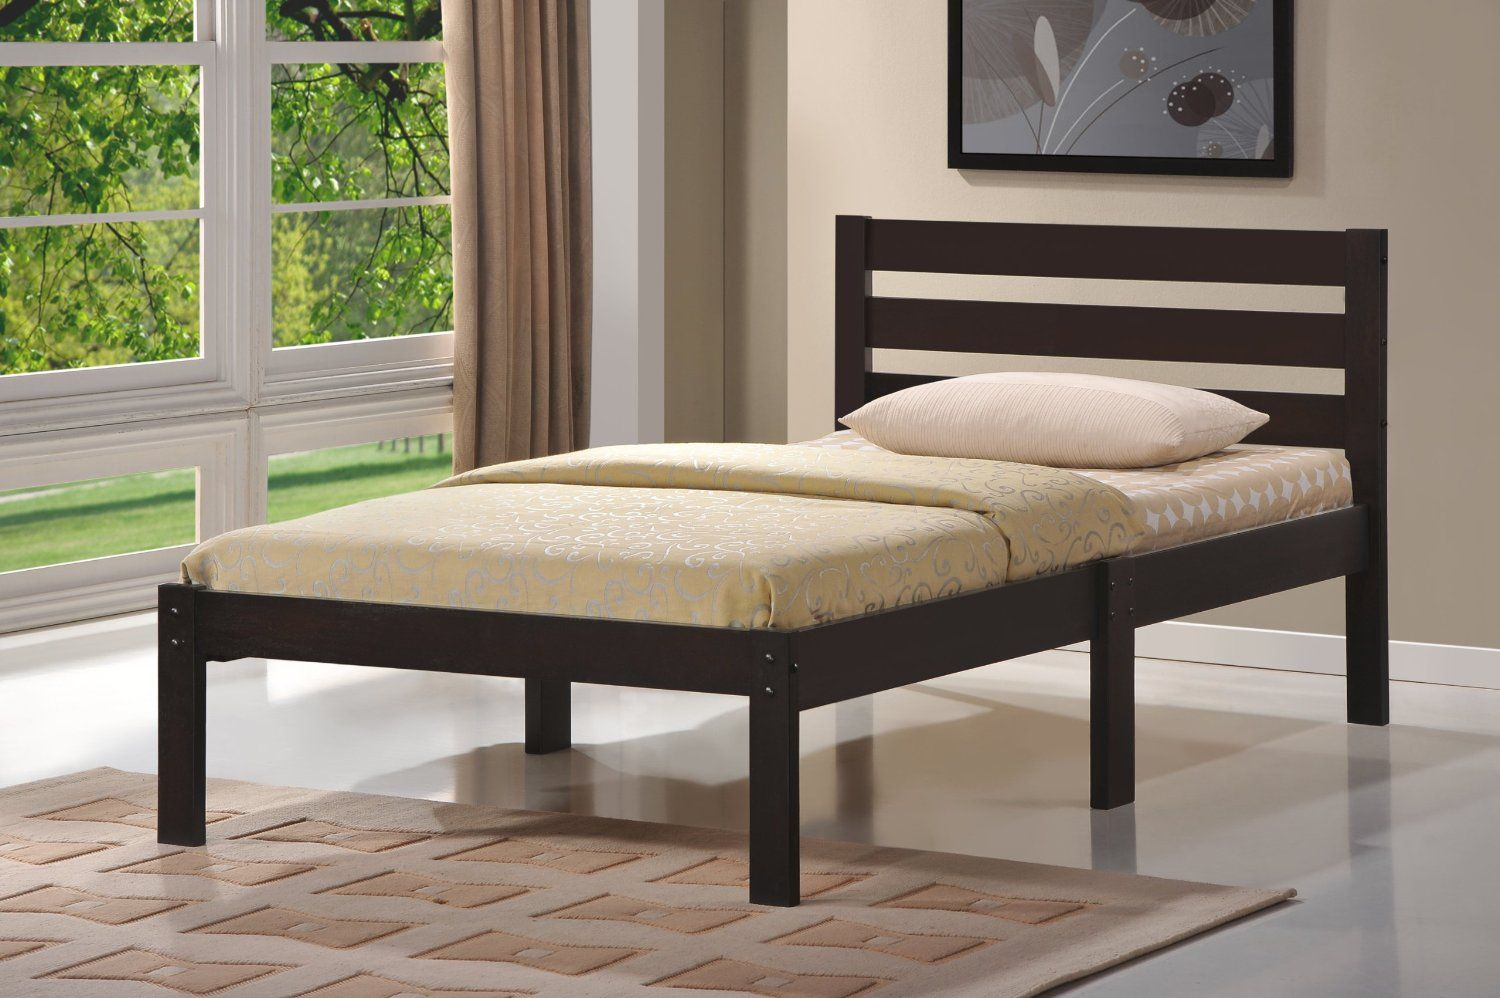 156.00 Home Life Short Headboard Espresso